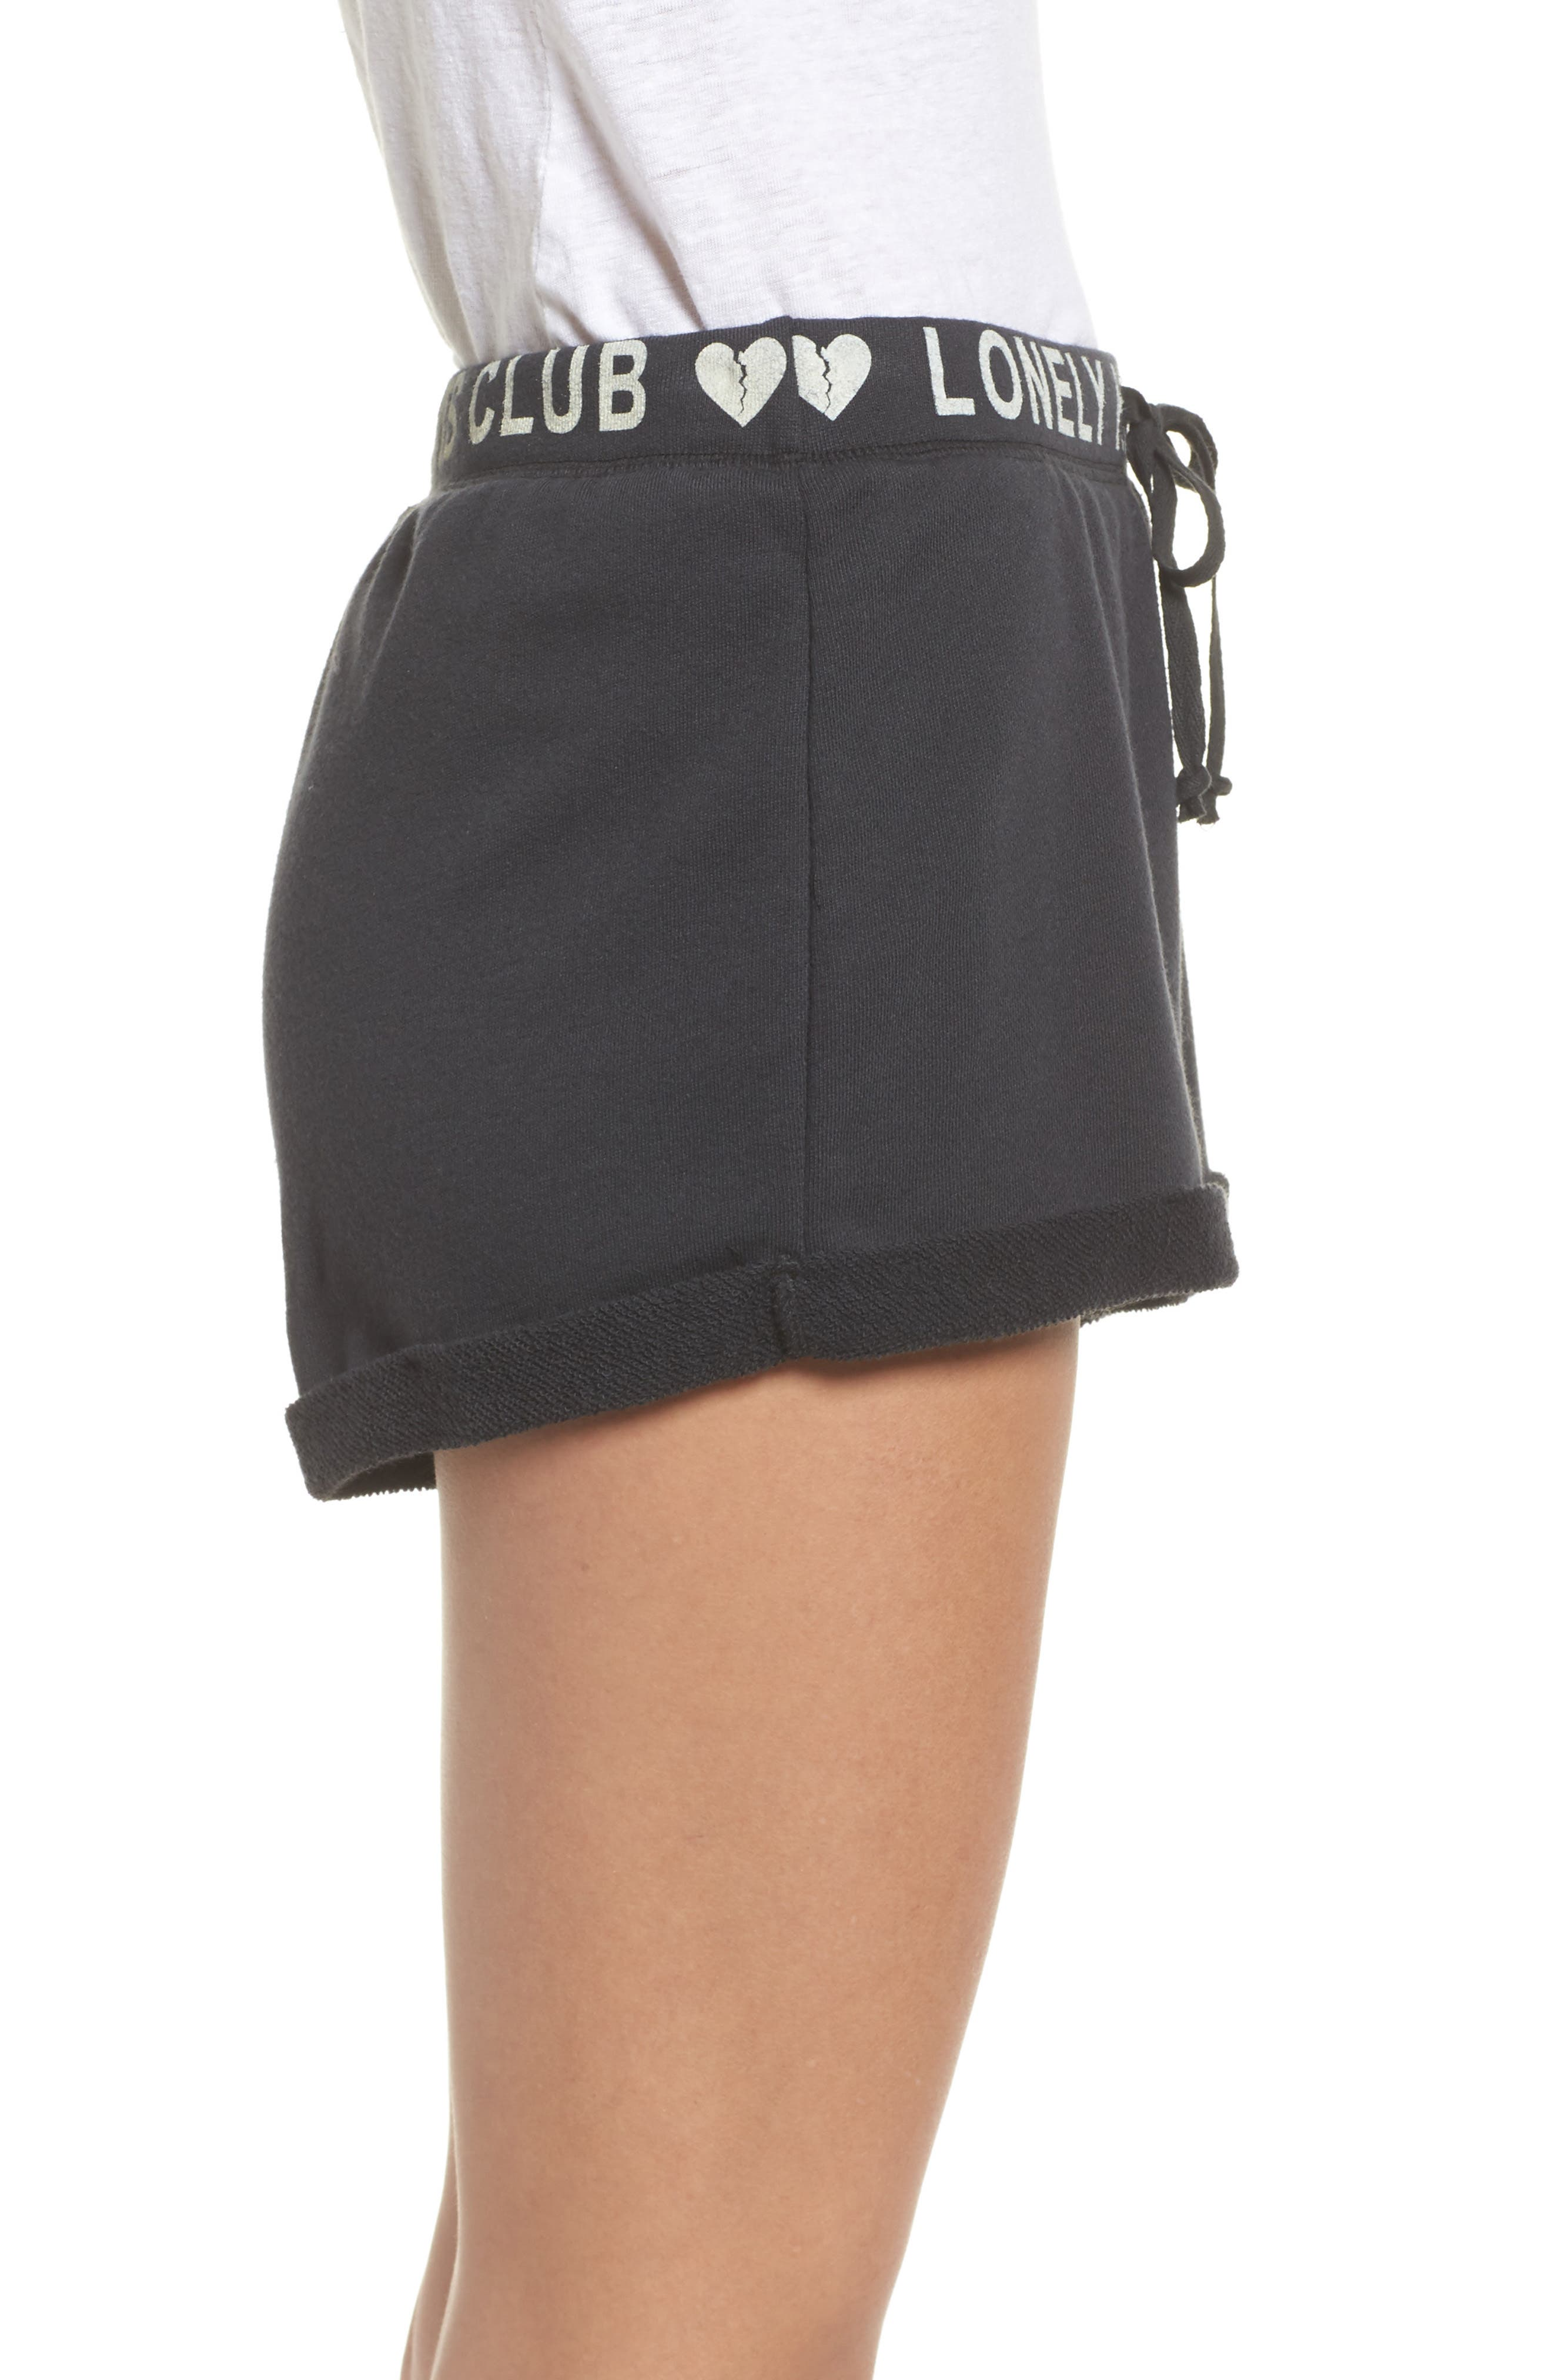 Lonely Hearts Club Lounge Shorts,                             Alternate thumbnail 3, color,